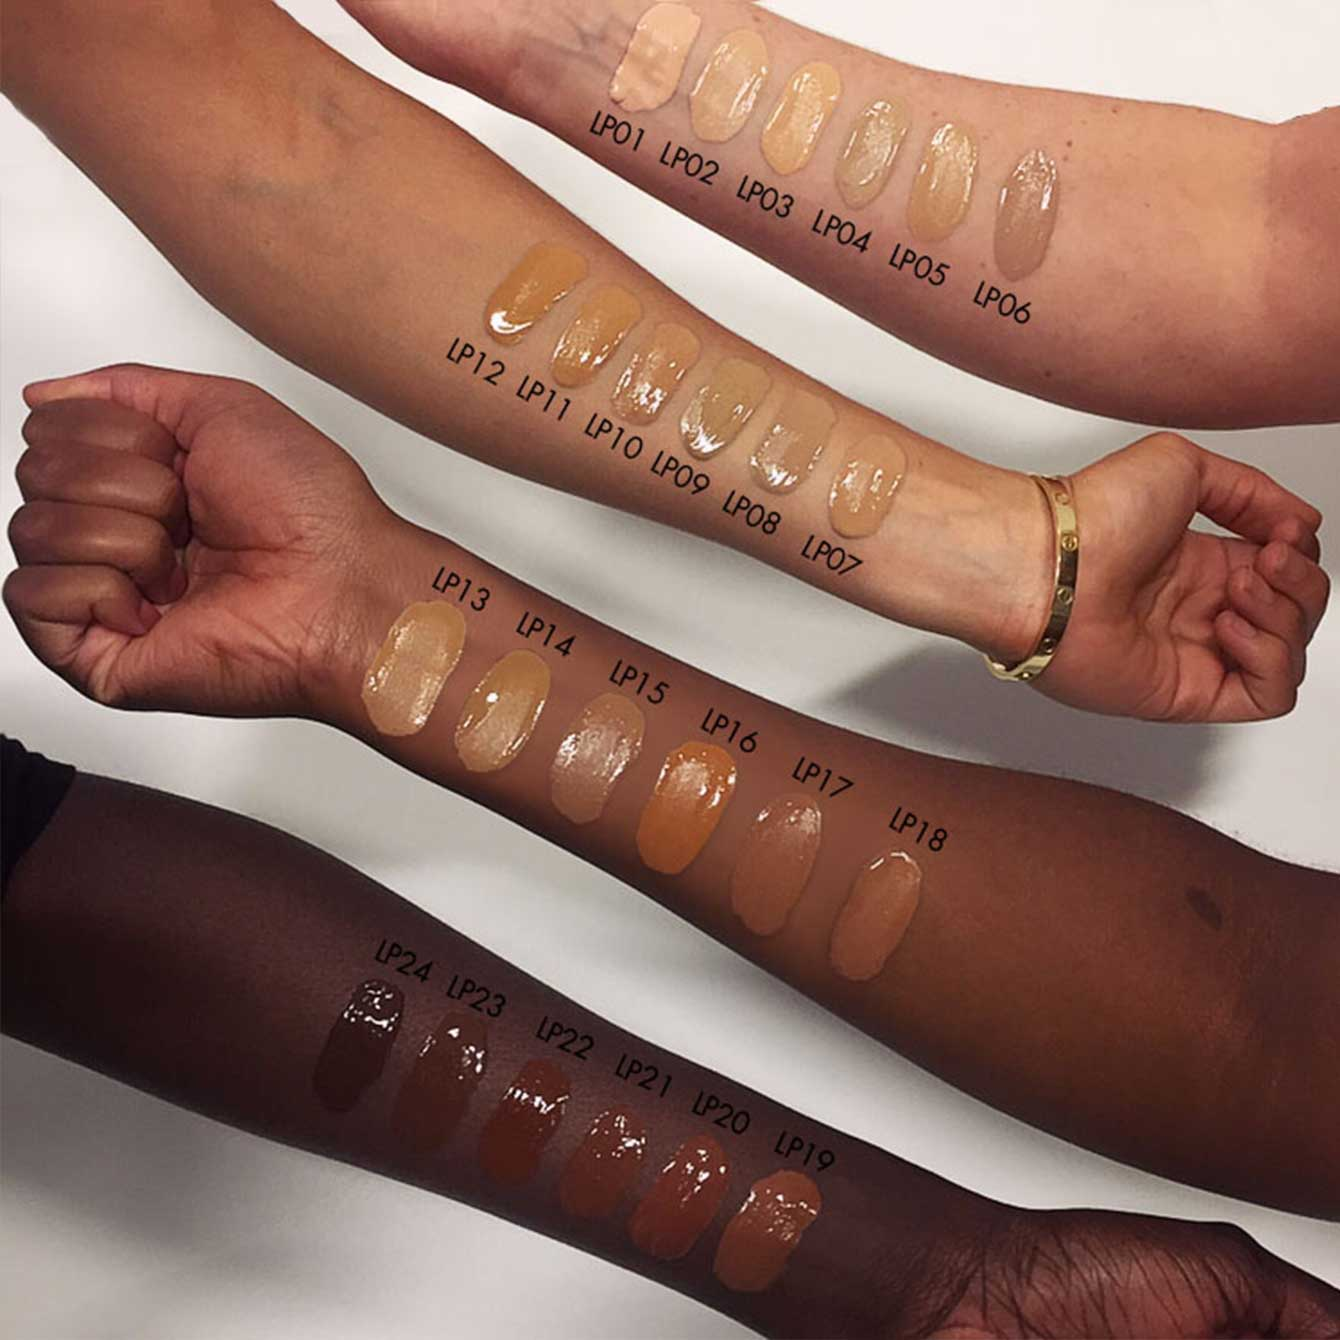 Lifeproof Sleek Makeup Shades On Skin